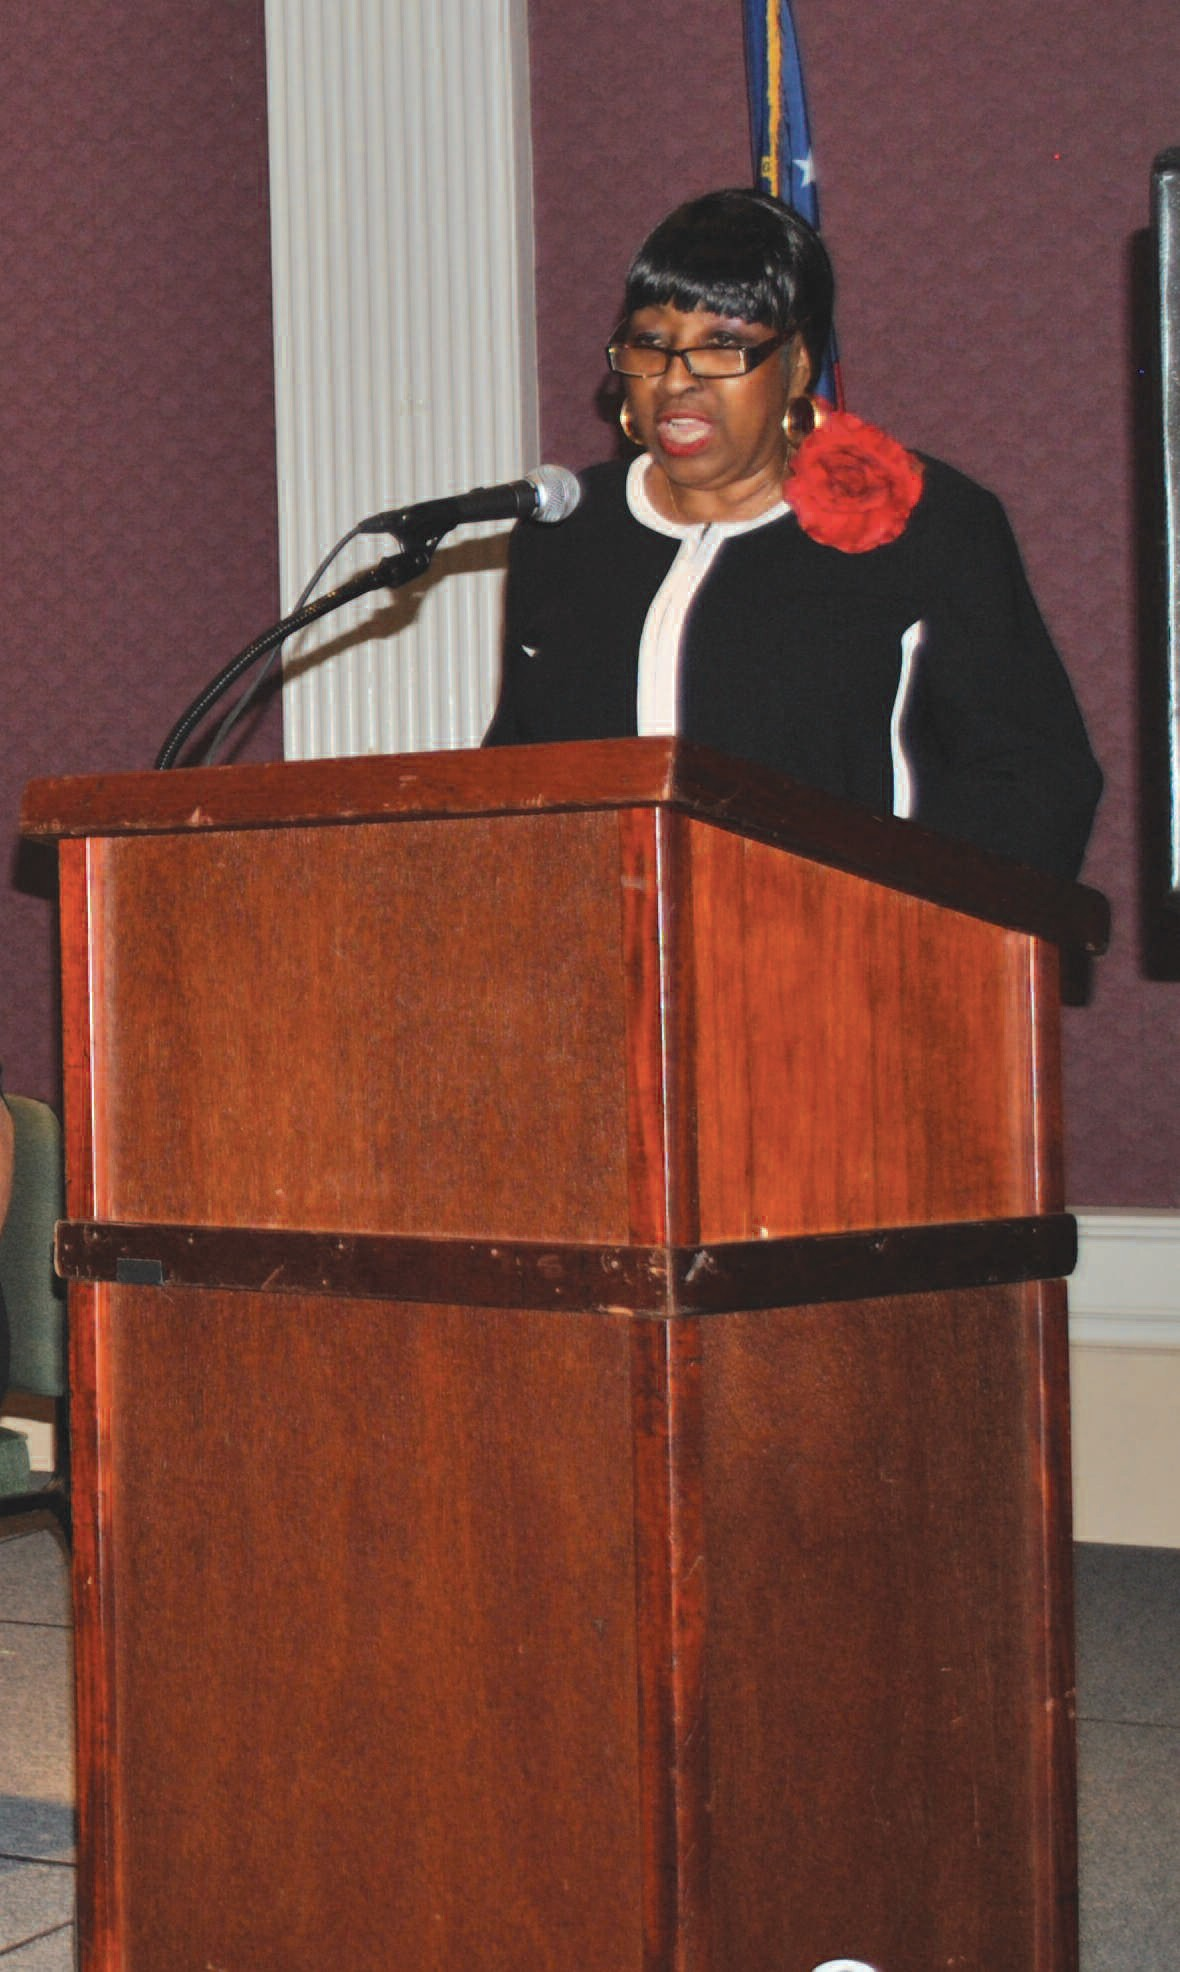 Mayor Edna Jackson made the opening remarks